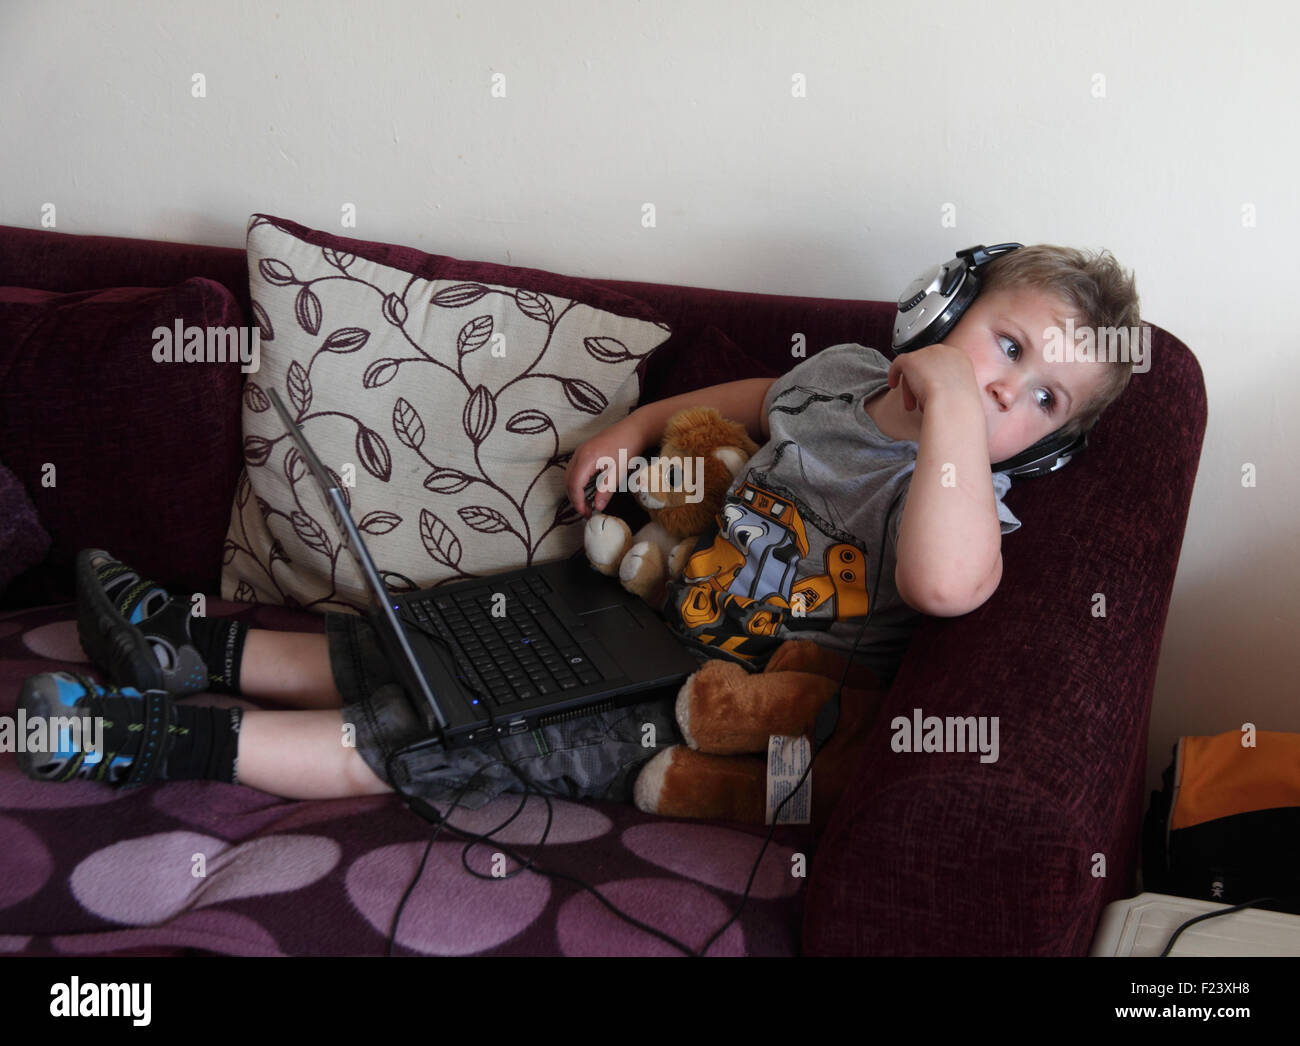 Small boy watching vidoes on laptop computer - Stock Image